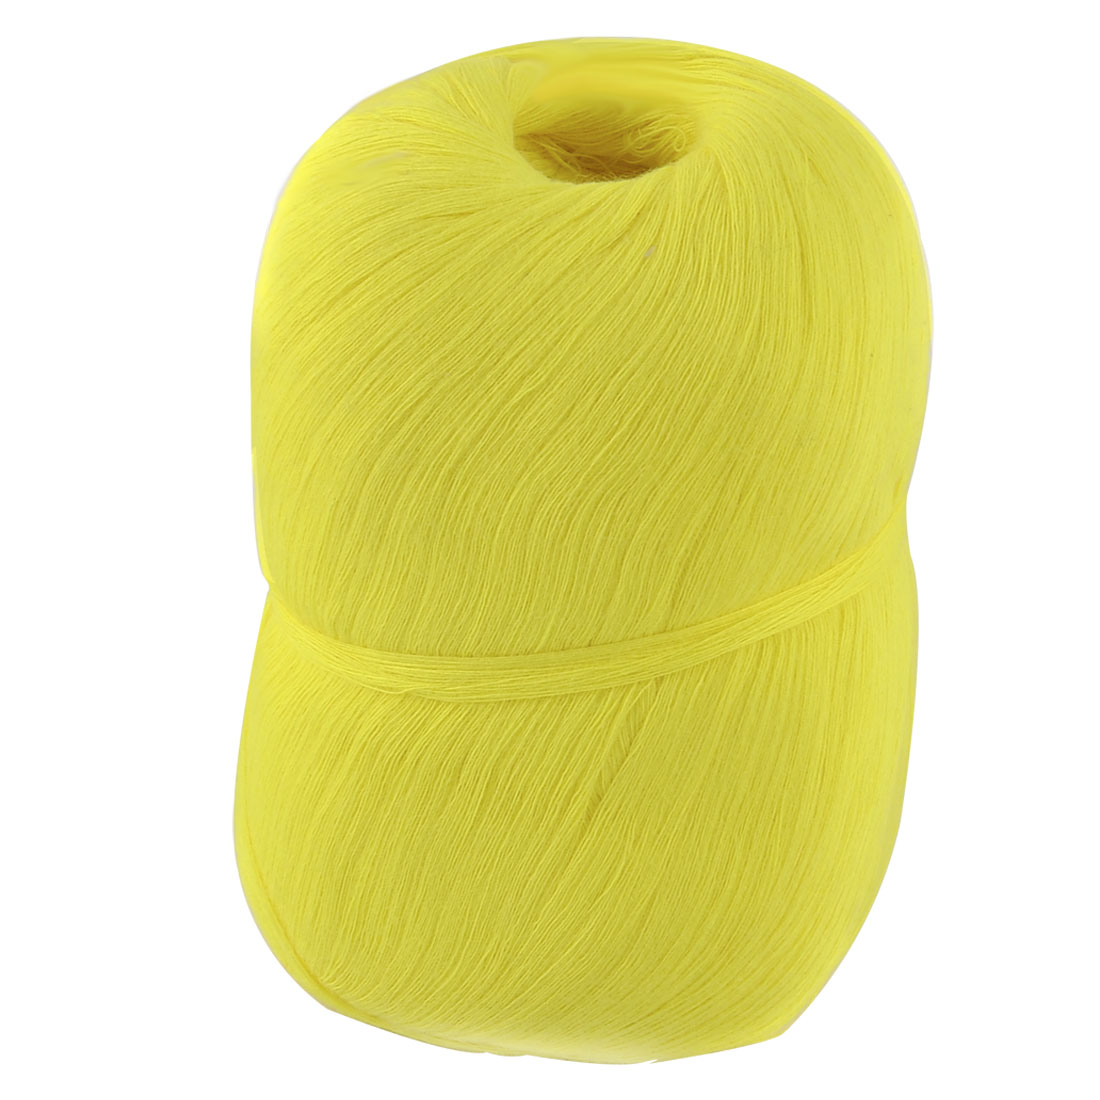 Hand DIY Clothes Tatting Knitting Cotton Thread Embroidery Craft Yarn Yellow